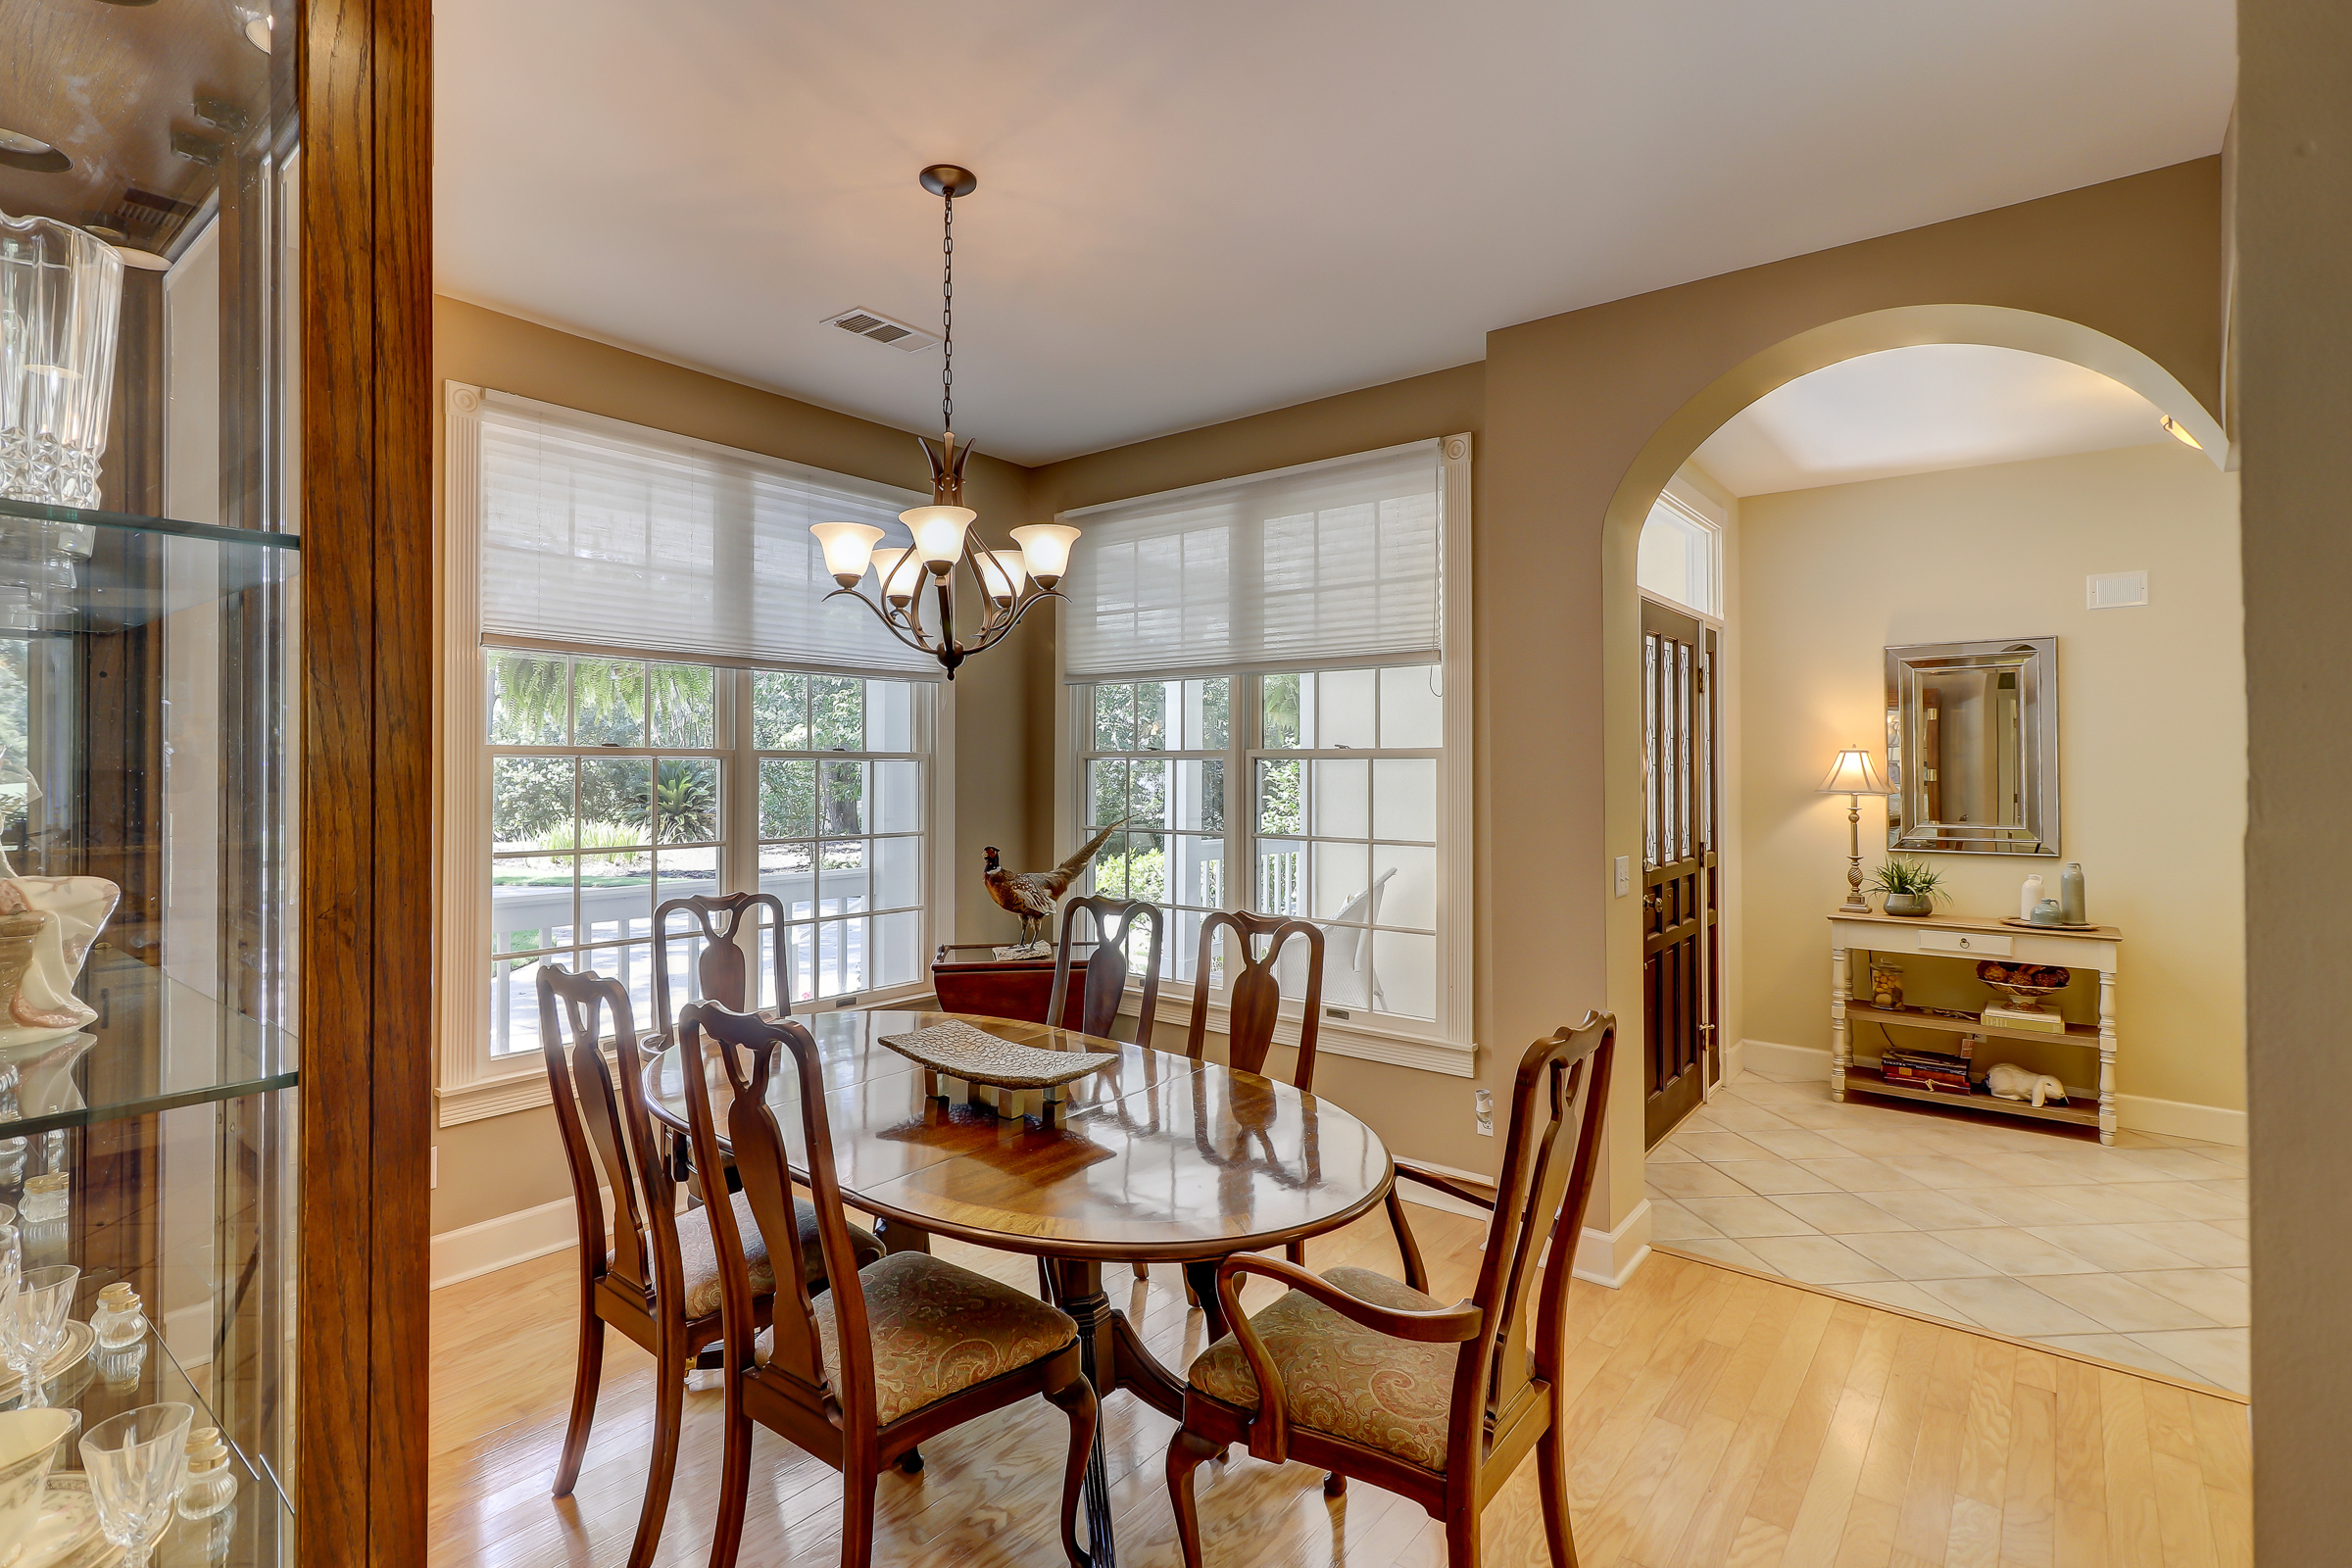 The formal dining room is off of the foyer and offers plenty of natural light with four windows which shines off of the hardwood floors.  The arched openings and great view of the beautiful front yard make this a special place to gather. 314 Fort Howell Dr - Palmetto Hall -  Hilton Head